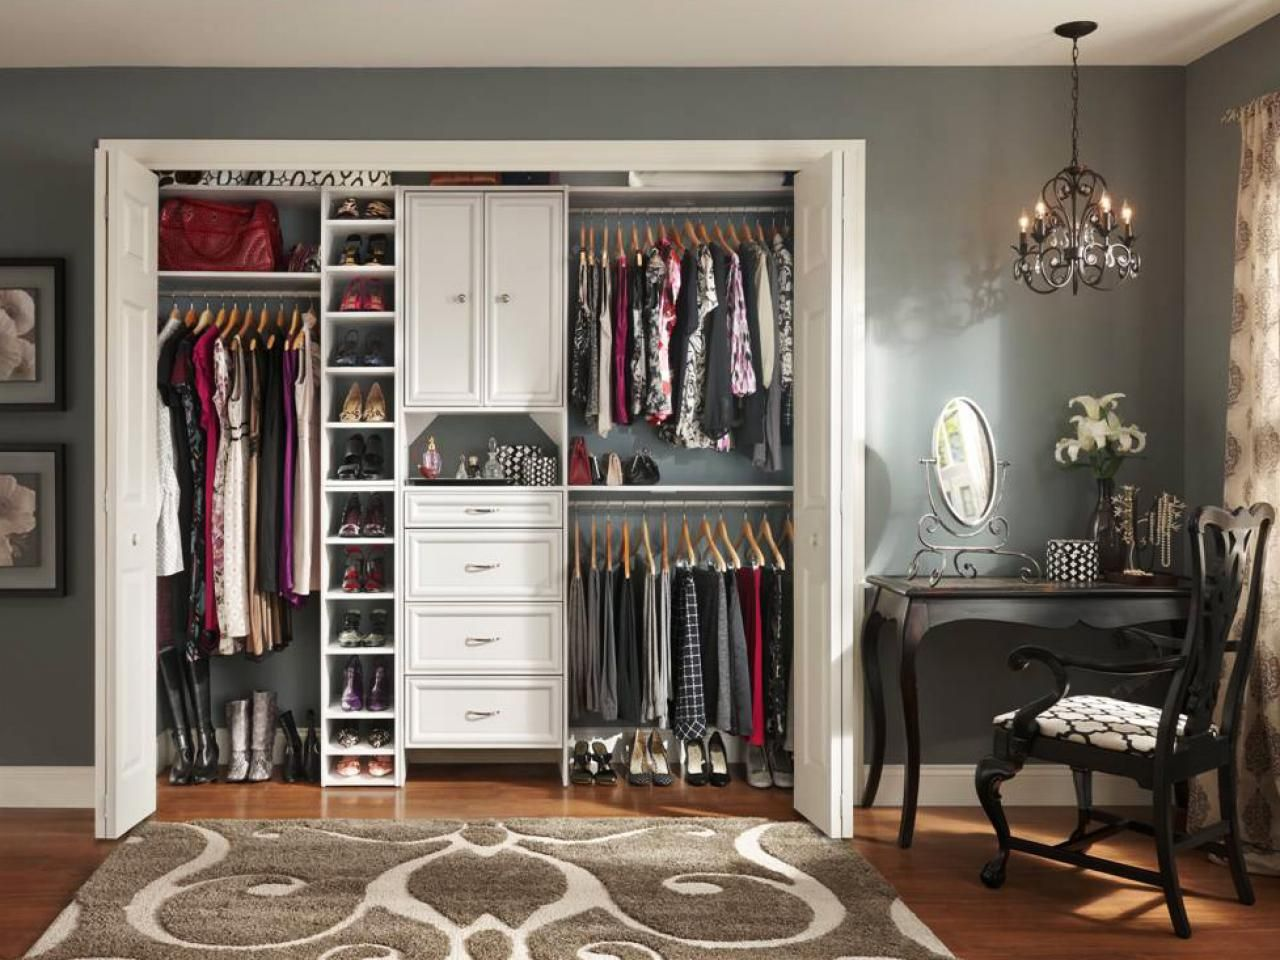 Give Your Closet A Cleaner And Tidier Look With Closet Organisation In 2020 Bedroom Organization Closet Master Bedroom Closet Closet Remodel